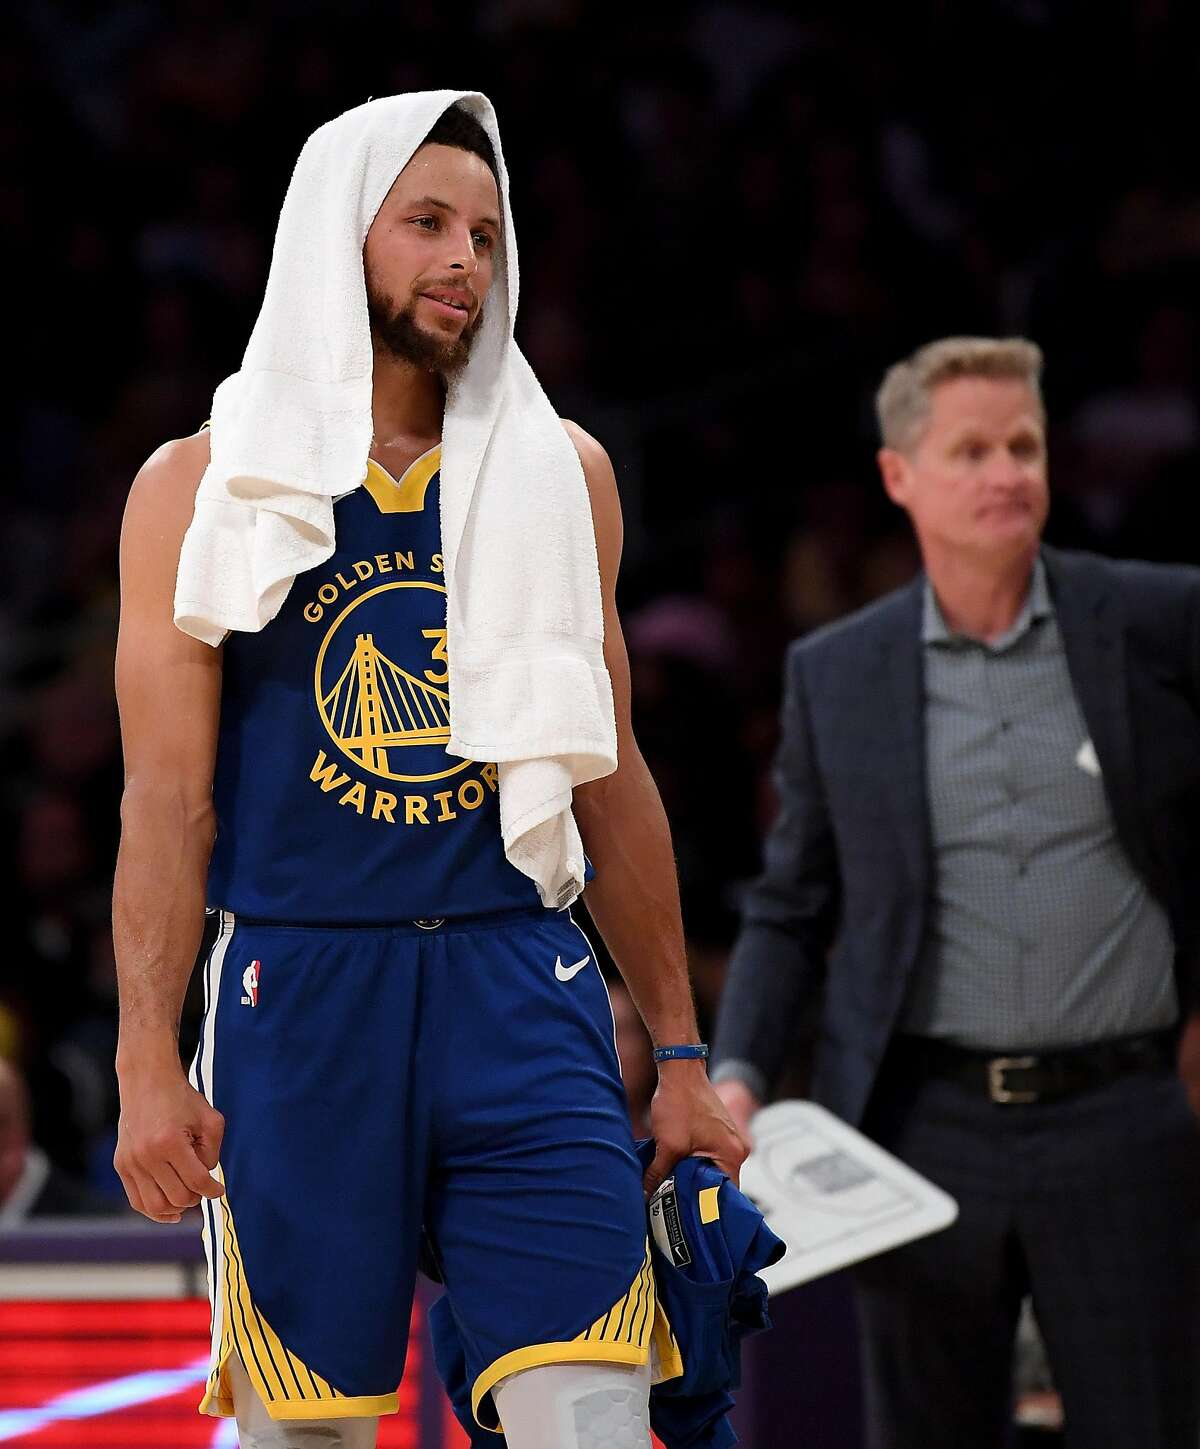 Stephen Curry #30 of the Golden State Warriors and head coach Steve Kerr react after a timeout during the first half against the Los Angeles Lakers at Staples Center on October 14, 2019 in Los Angeles, California. (Photo by Harry How/Getty Images)